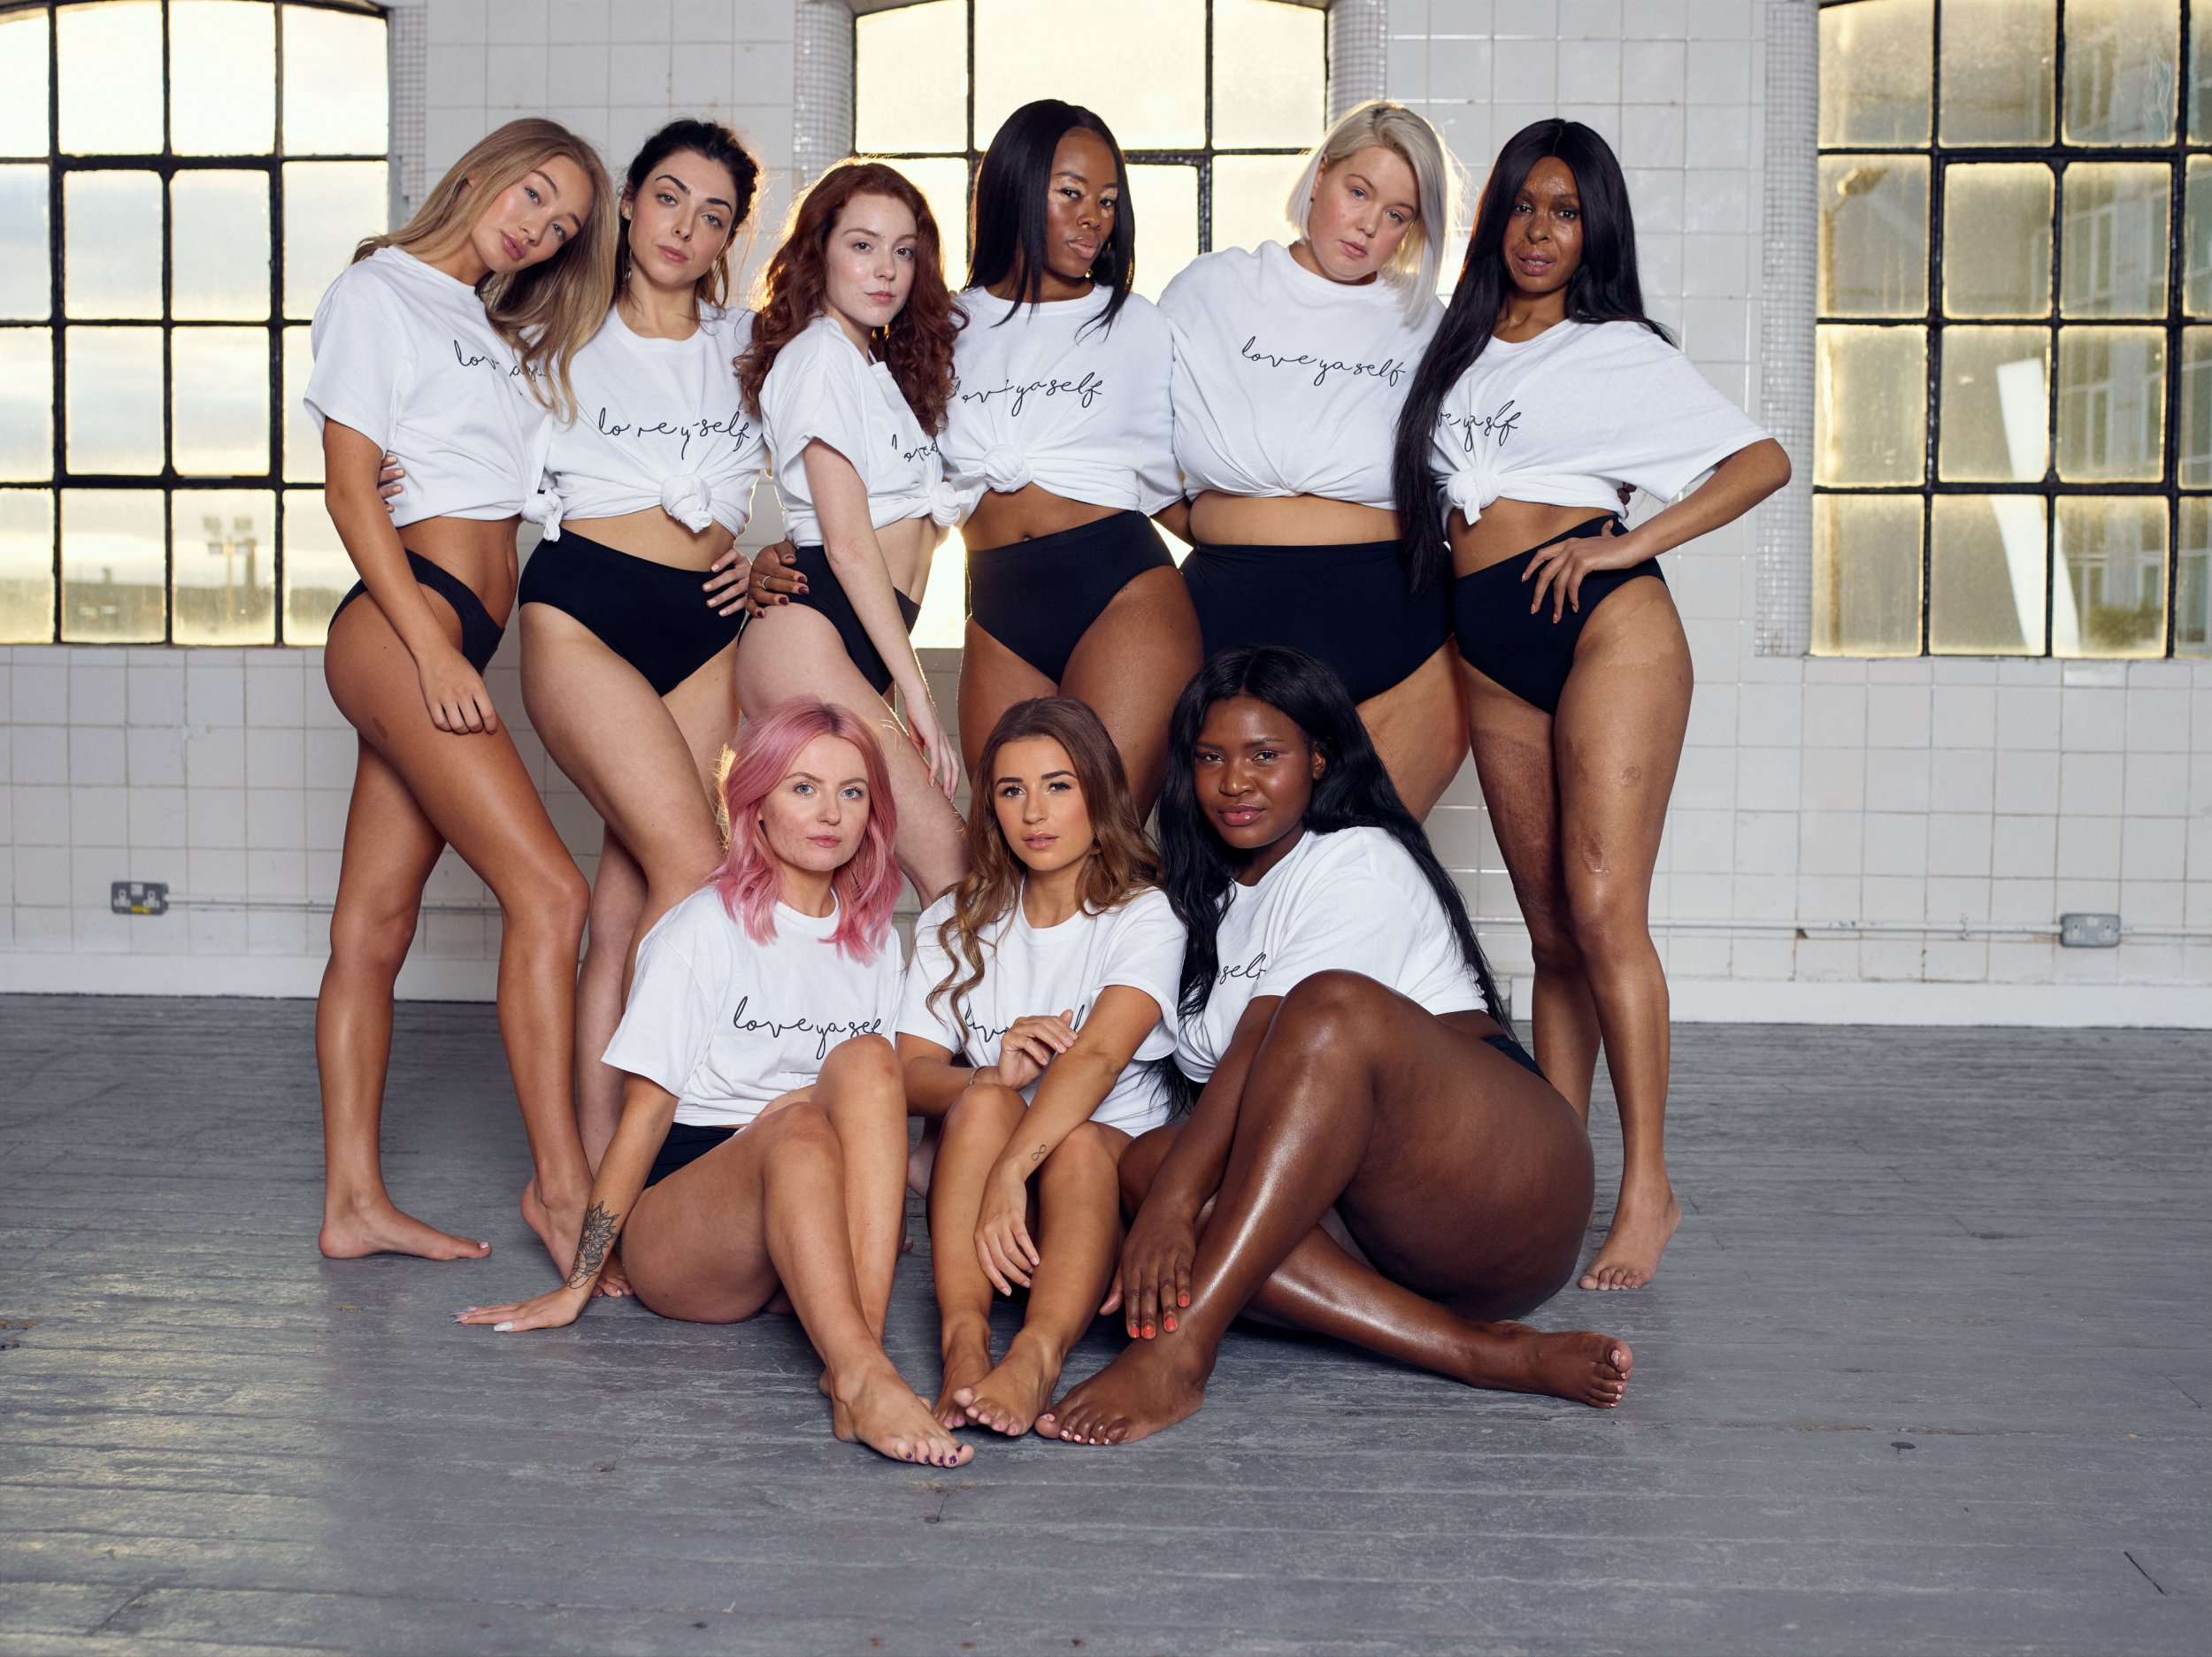 IN THE STYLE LAUNCHES CAMPAIGN WITH DANI DYER AS THE BRAND PLEDGES TO STOP RETOUCHING ALL IMAGERY Fashion e-tailer In The Style has today announced its pledge to stop retouching all website imagery and any original content created for its social media, starting with an inclusive #ITSjustgotreal campaign, featuring nine women, including Love Island winner Dani Dyer. In a bid to celebrate women???s natural beauty and with awareness of the impact that social media can have on its audience, In The Style has pledged that from tomorrow, 14th February 2019, every new piece of content created and uploaded by In The Style, including its celebrity and influencer collaborations, will receive no airbrushing. In The Style CEO and Founder, Adam Frisby, says: ???As a social first fashion brand we are becoming increasingly aware of the impact that editing our images has on our audience. This is something that most if not all retailers and marketeers do to sell products in ???the best possible way???. However, we believe it???s our social responsibility to tackle the subconscious reinforcement to women that they have to look like the impossibly airbrushed girls they see on websites. This is one trend that is out of style at ITS and we believe it???s time to get REAL - we are all beautiful and we should celebrate that. ???From today, and going forward, all pictures that are uploaded to our website and all original content created for our social media and marketing channels will show our models and ambassadors as the beautiful, unedited girls they are. Of course we will still use all the usual girl tricks - make-up and hairspray - to create our vibe, but we will not be smoothing out any lines, wrinkles, lumps or bumps to sell you something that just is not real. ???Those stretch marks, moles, love handles, scars or cellulite should be celebrated in all their glory and that???s exactly what we???re going to do.??? The #ITSjustgotreal campaign, fronted by Dani Dyer